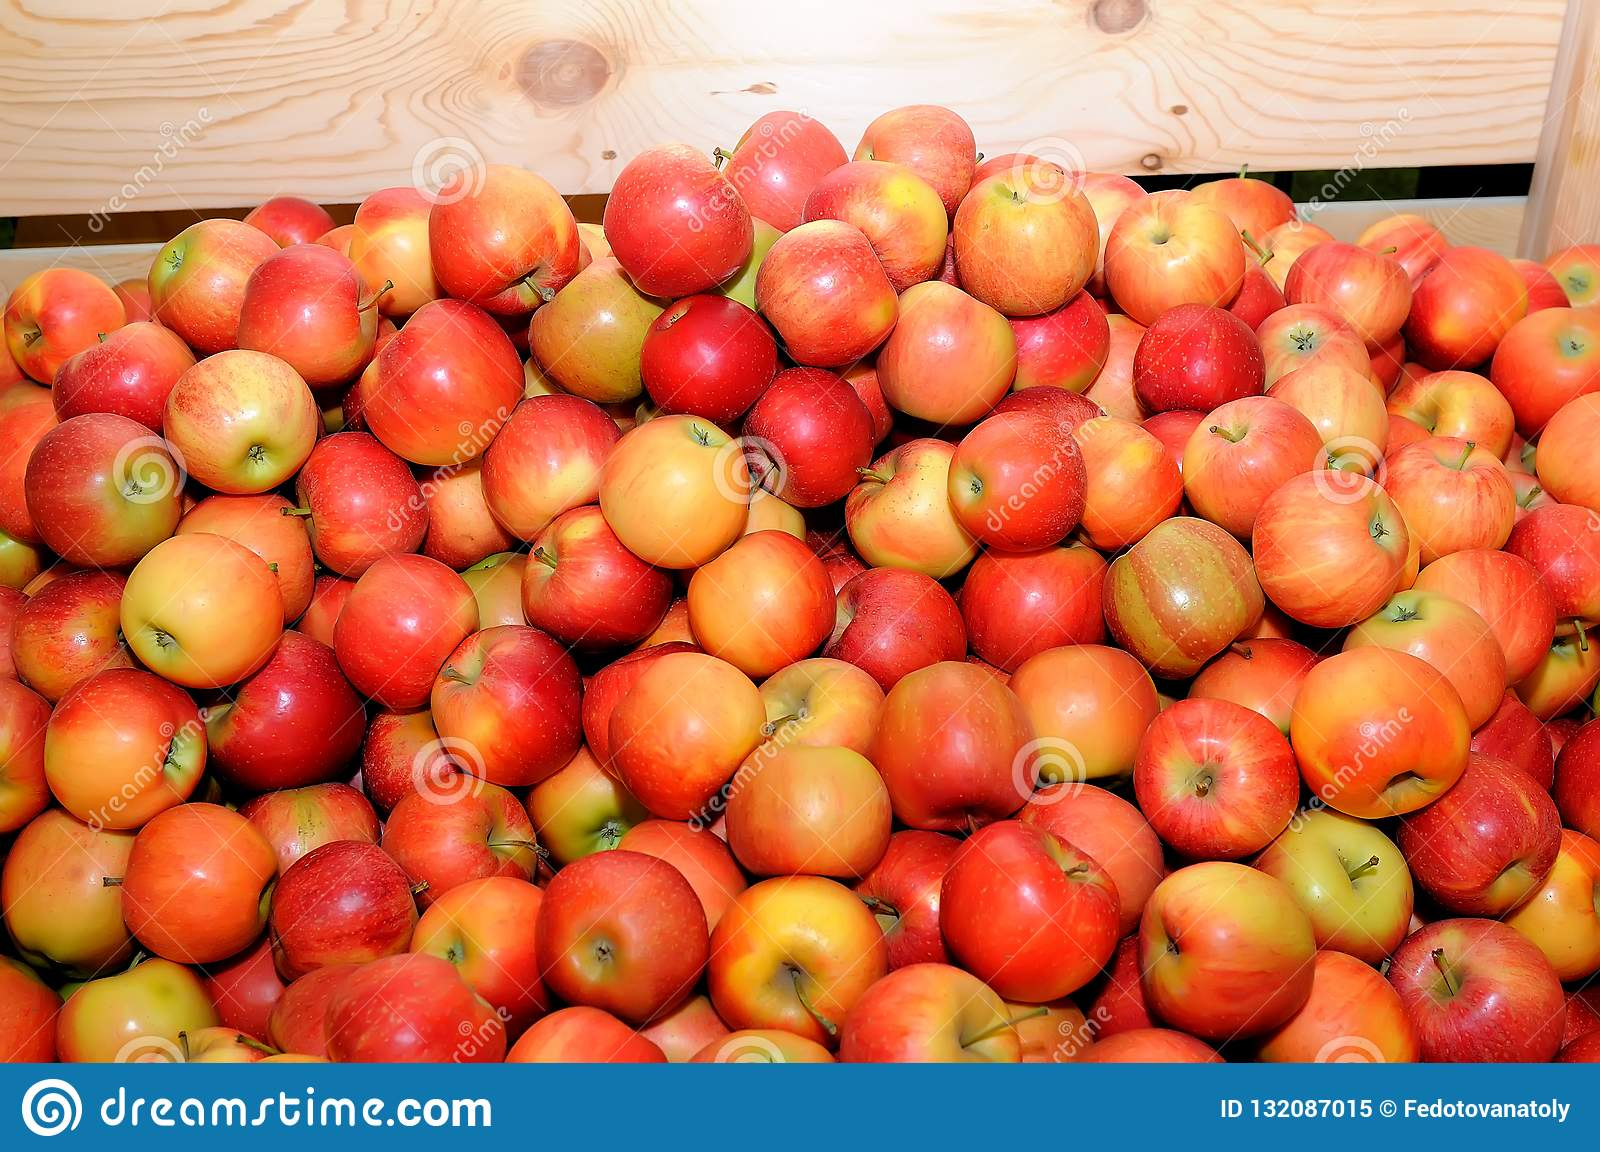 Red fresh apples in a pile on a wooden box